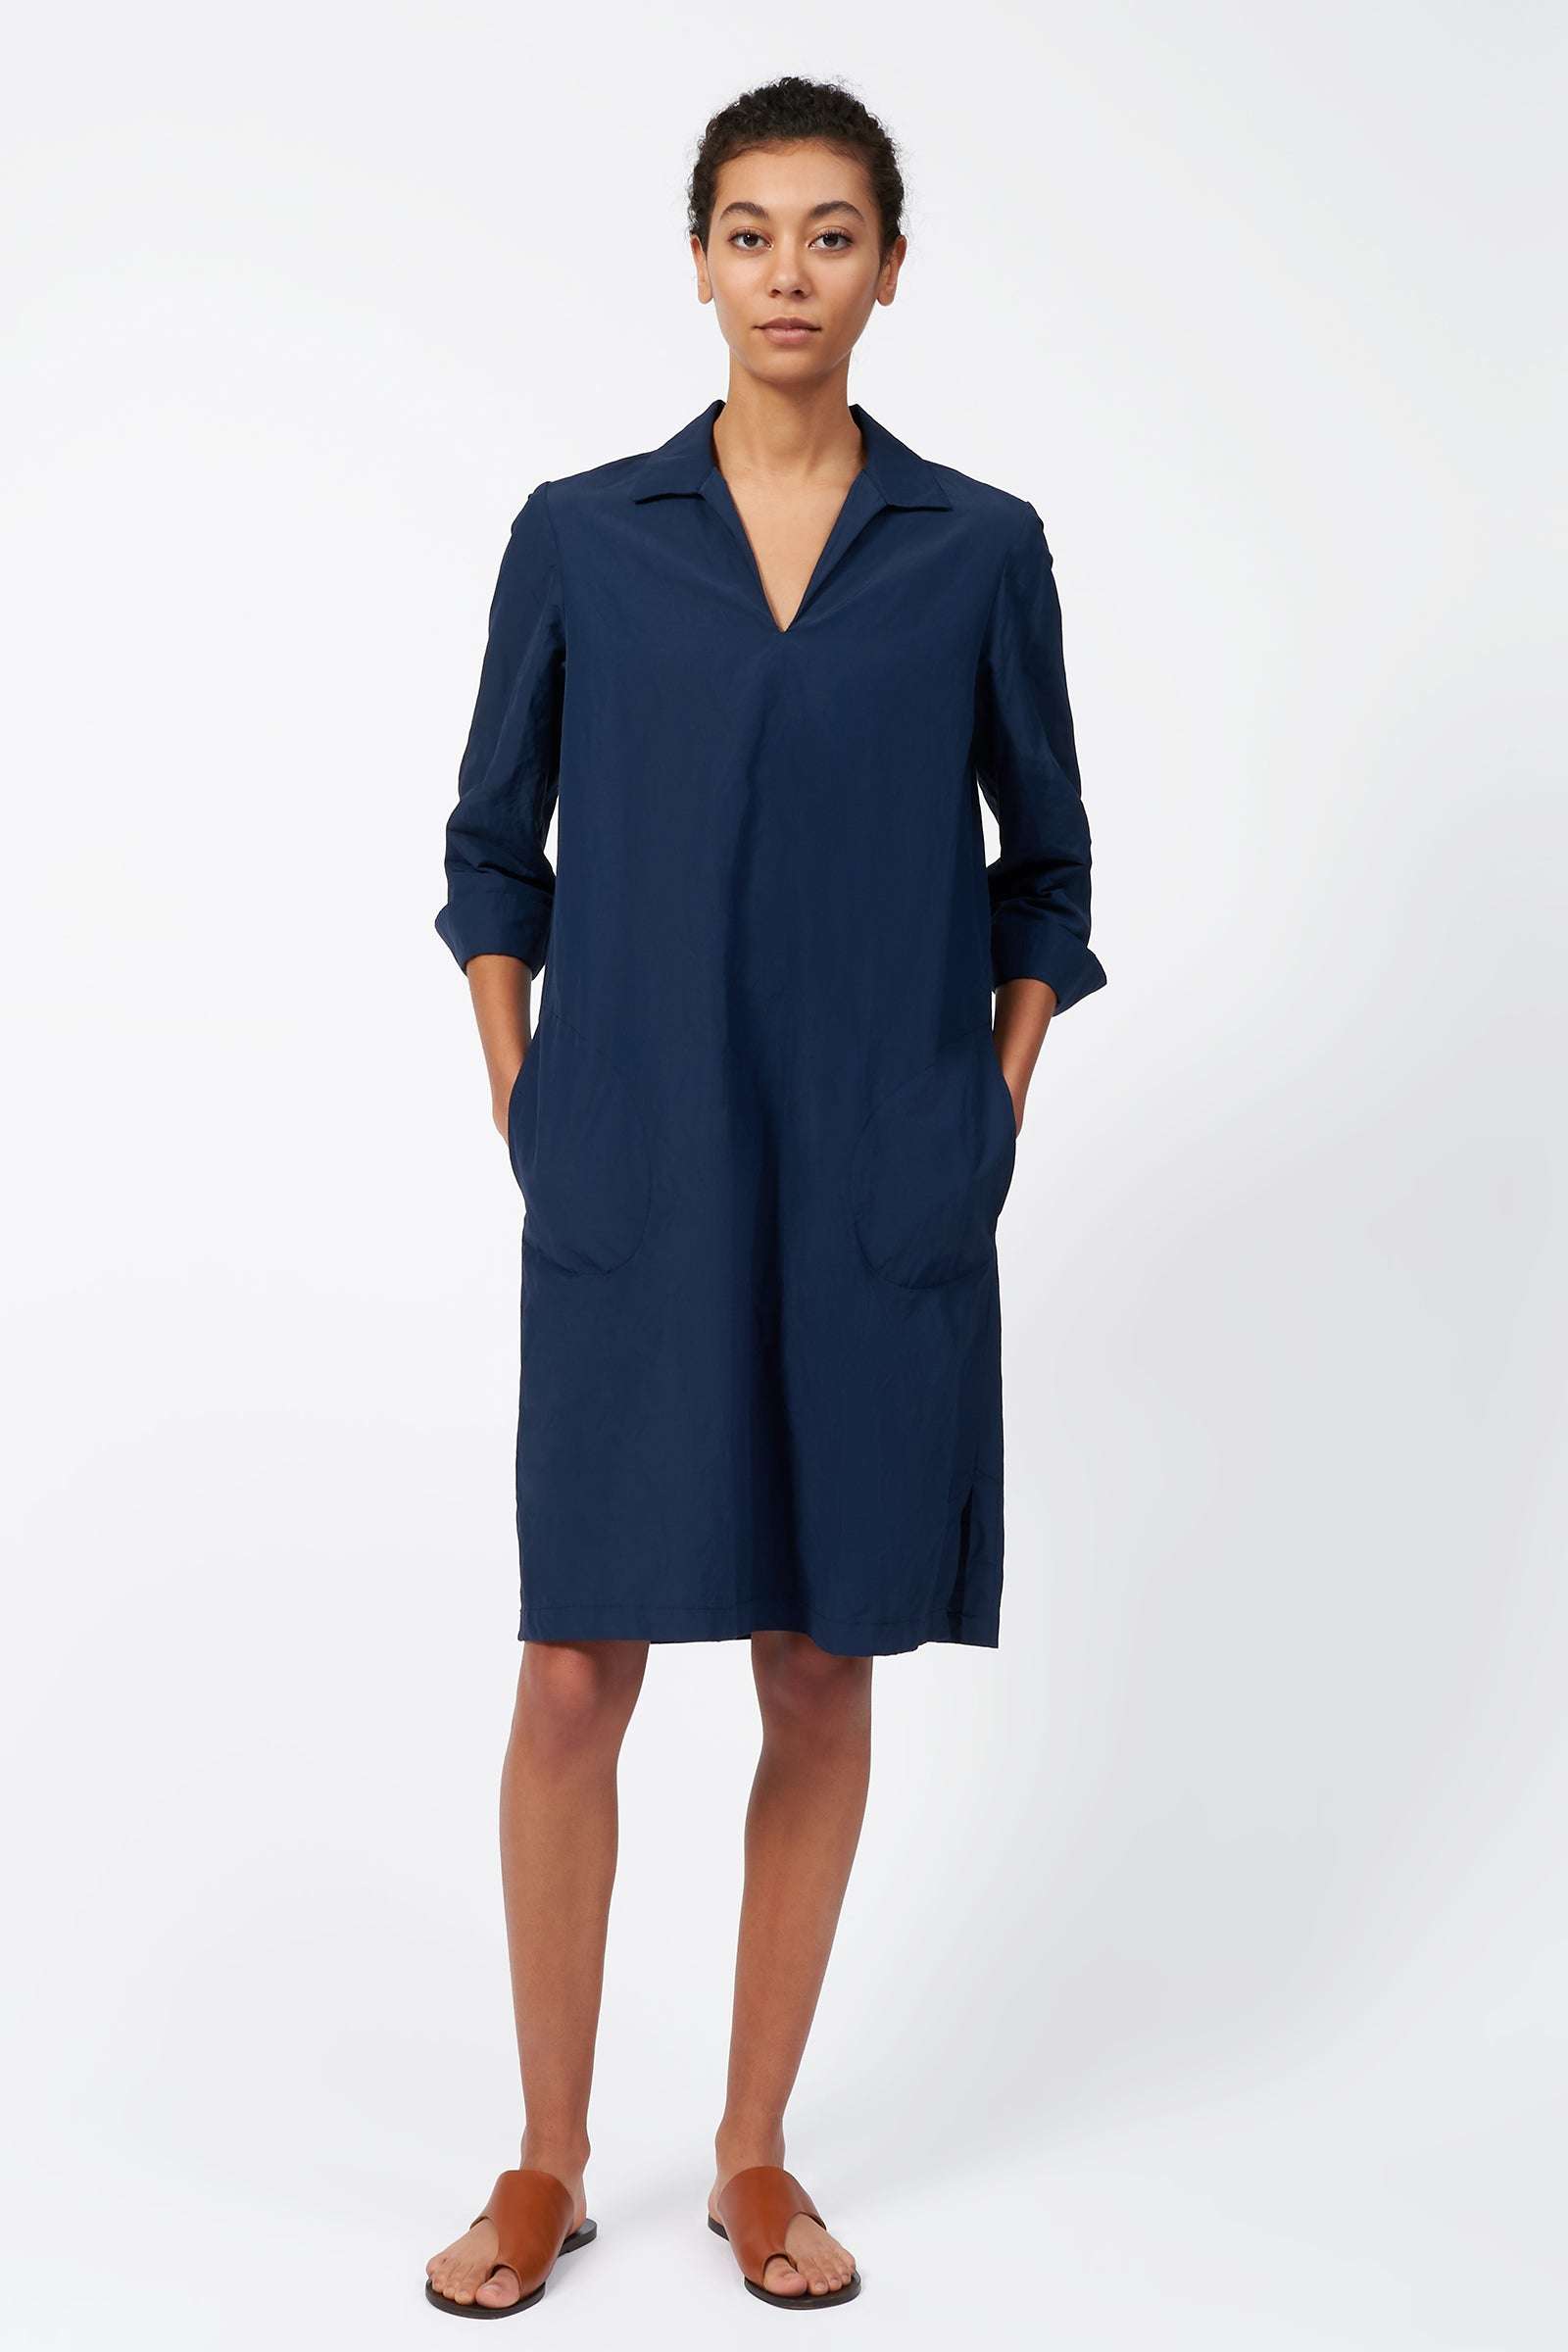 Kal Rieman Collared V Neck Dress in Navy on Model Full Front View